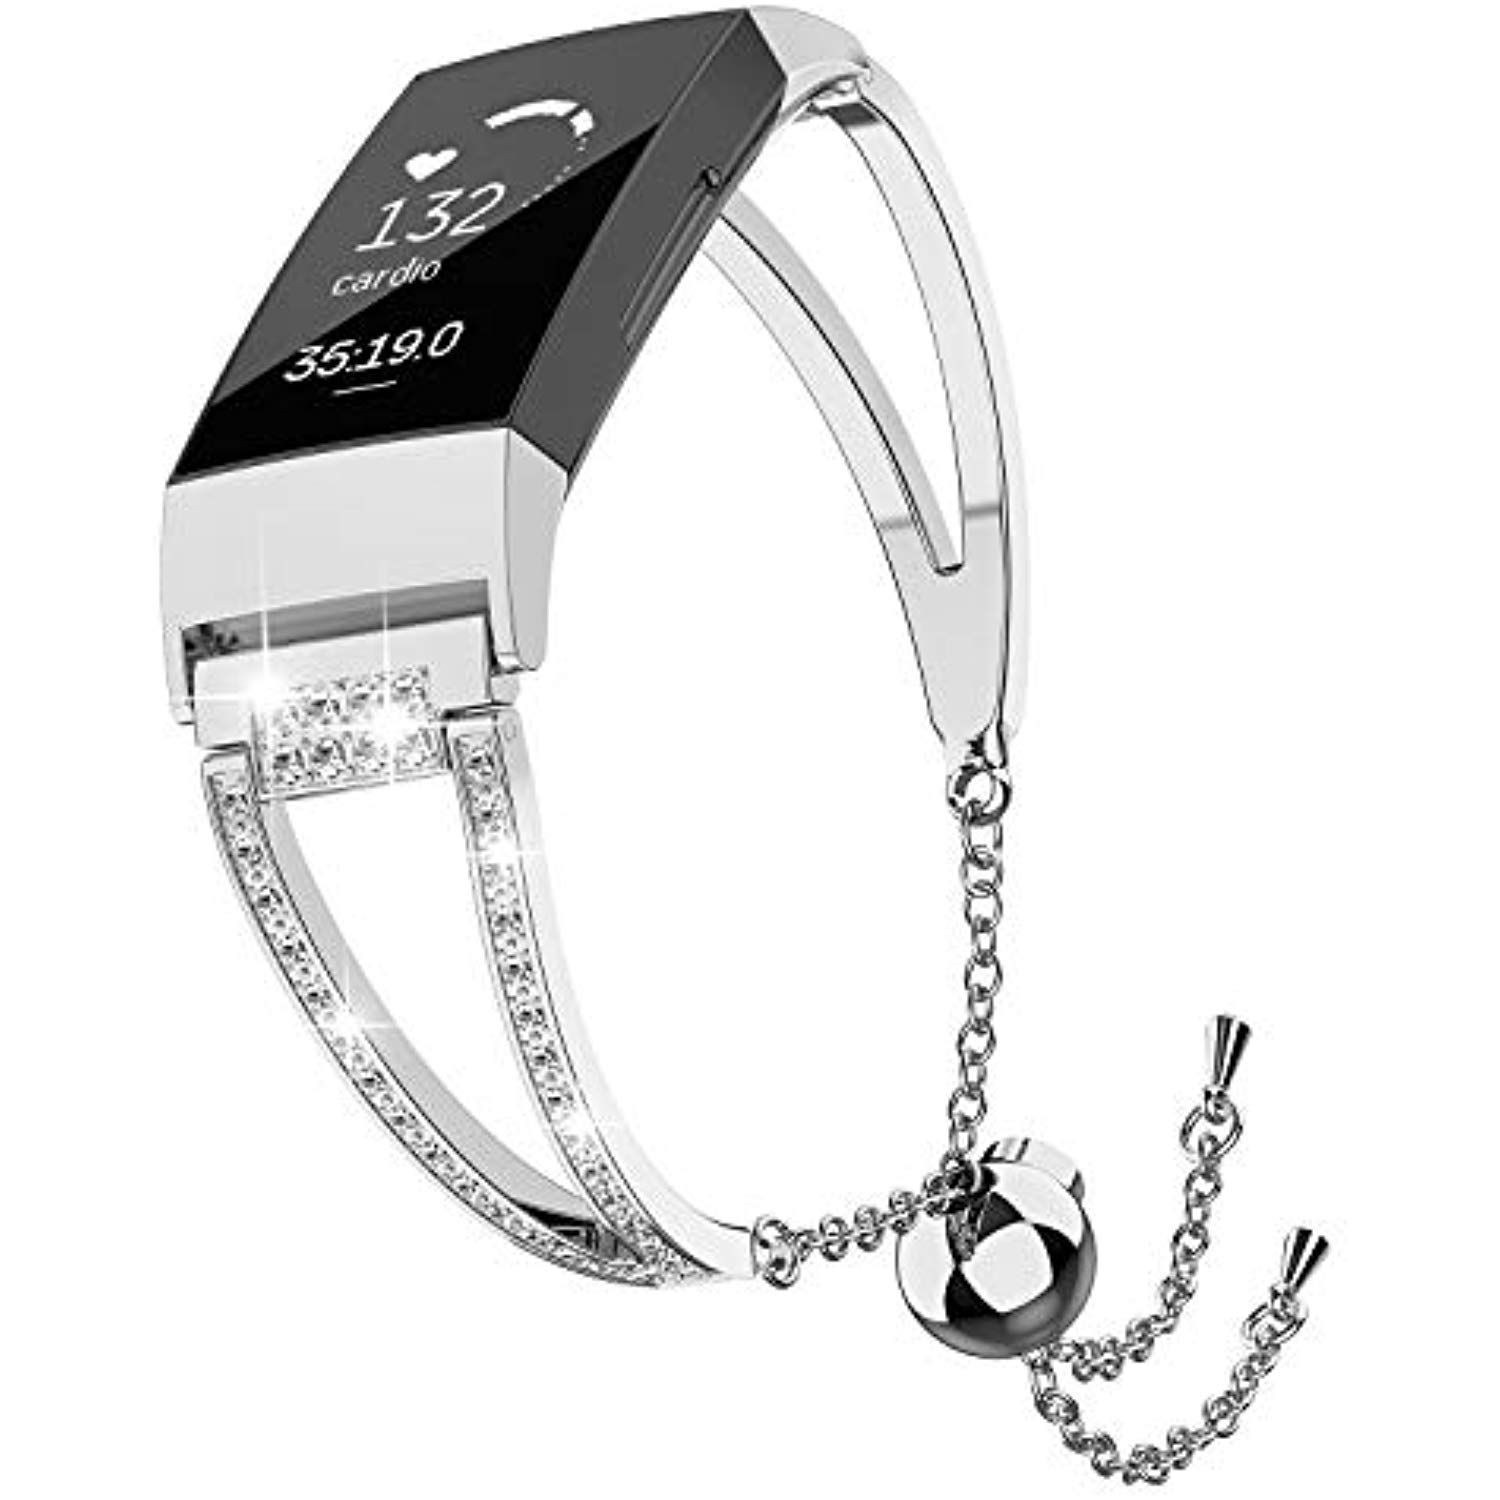 Pin On Smart Arm Wristband Accessories